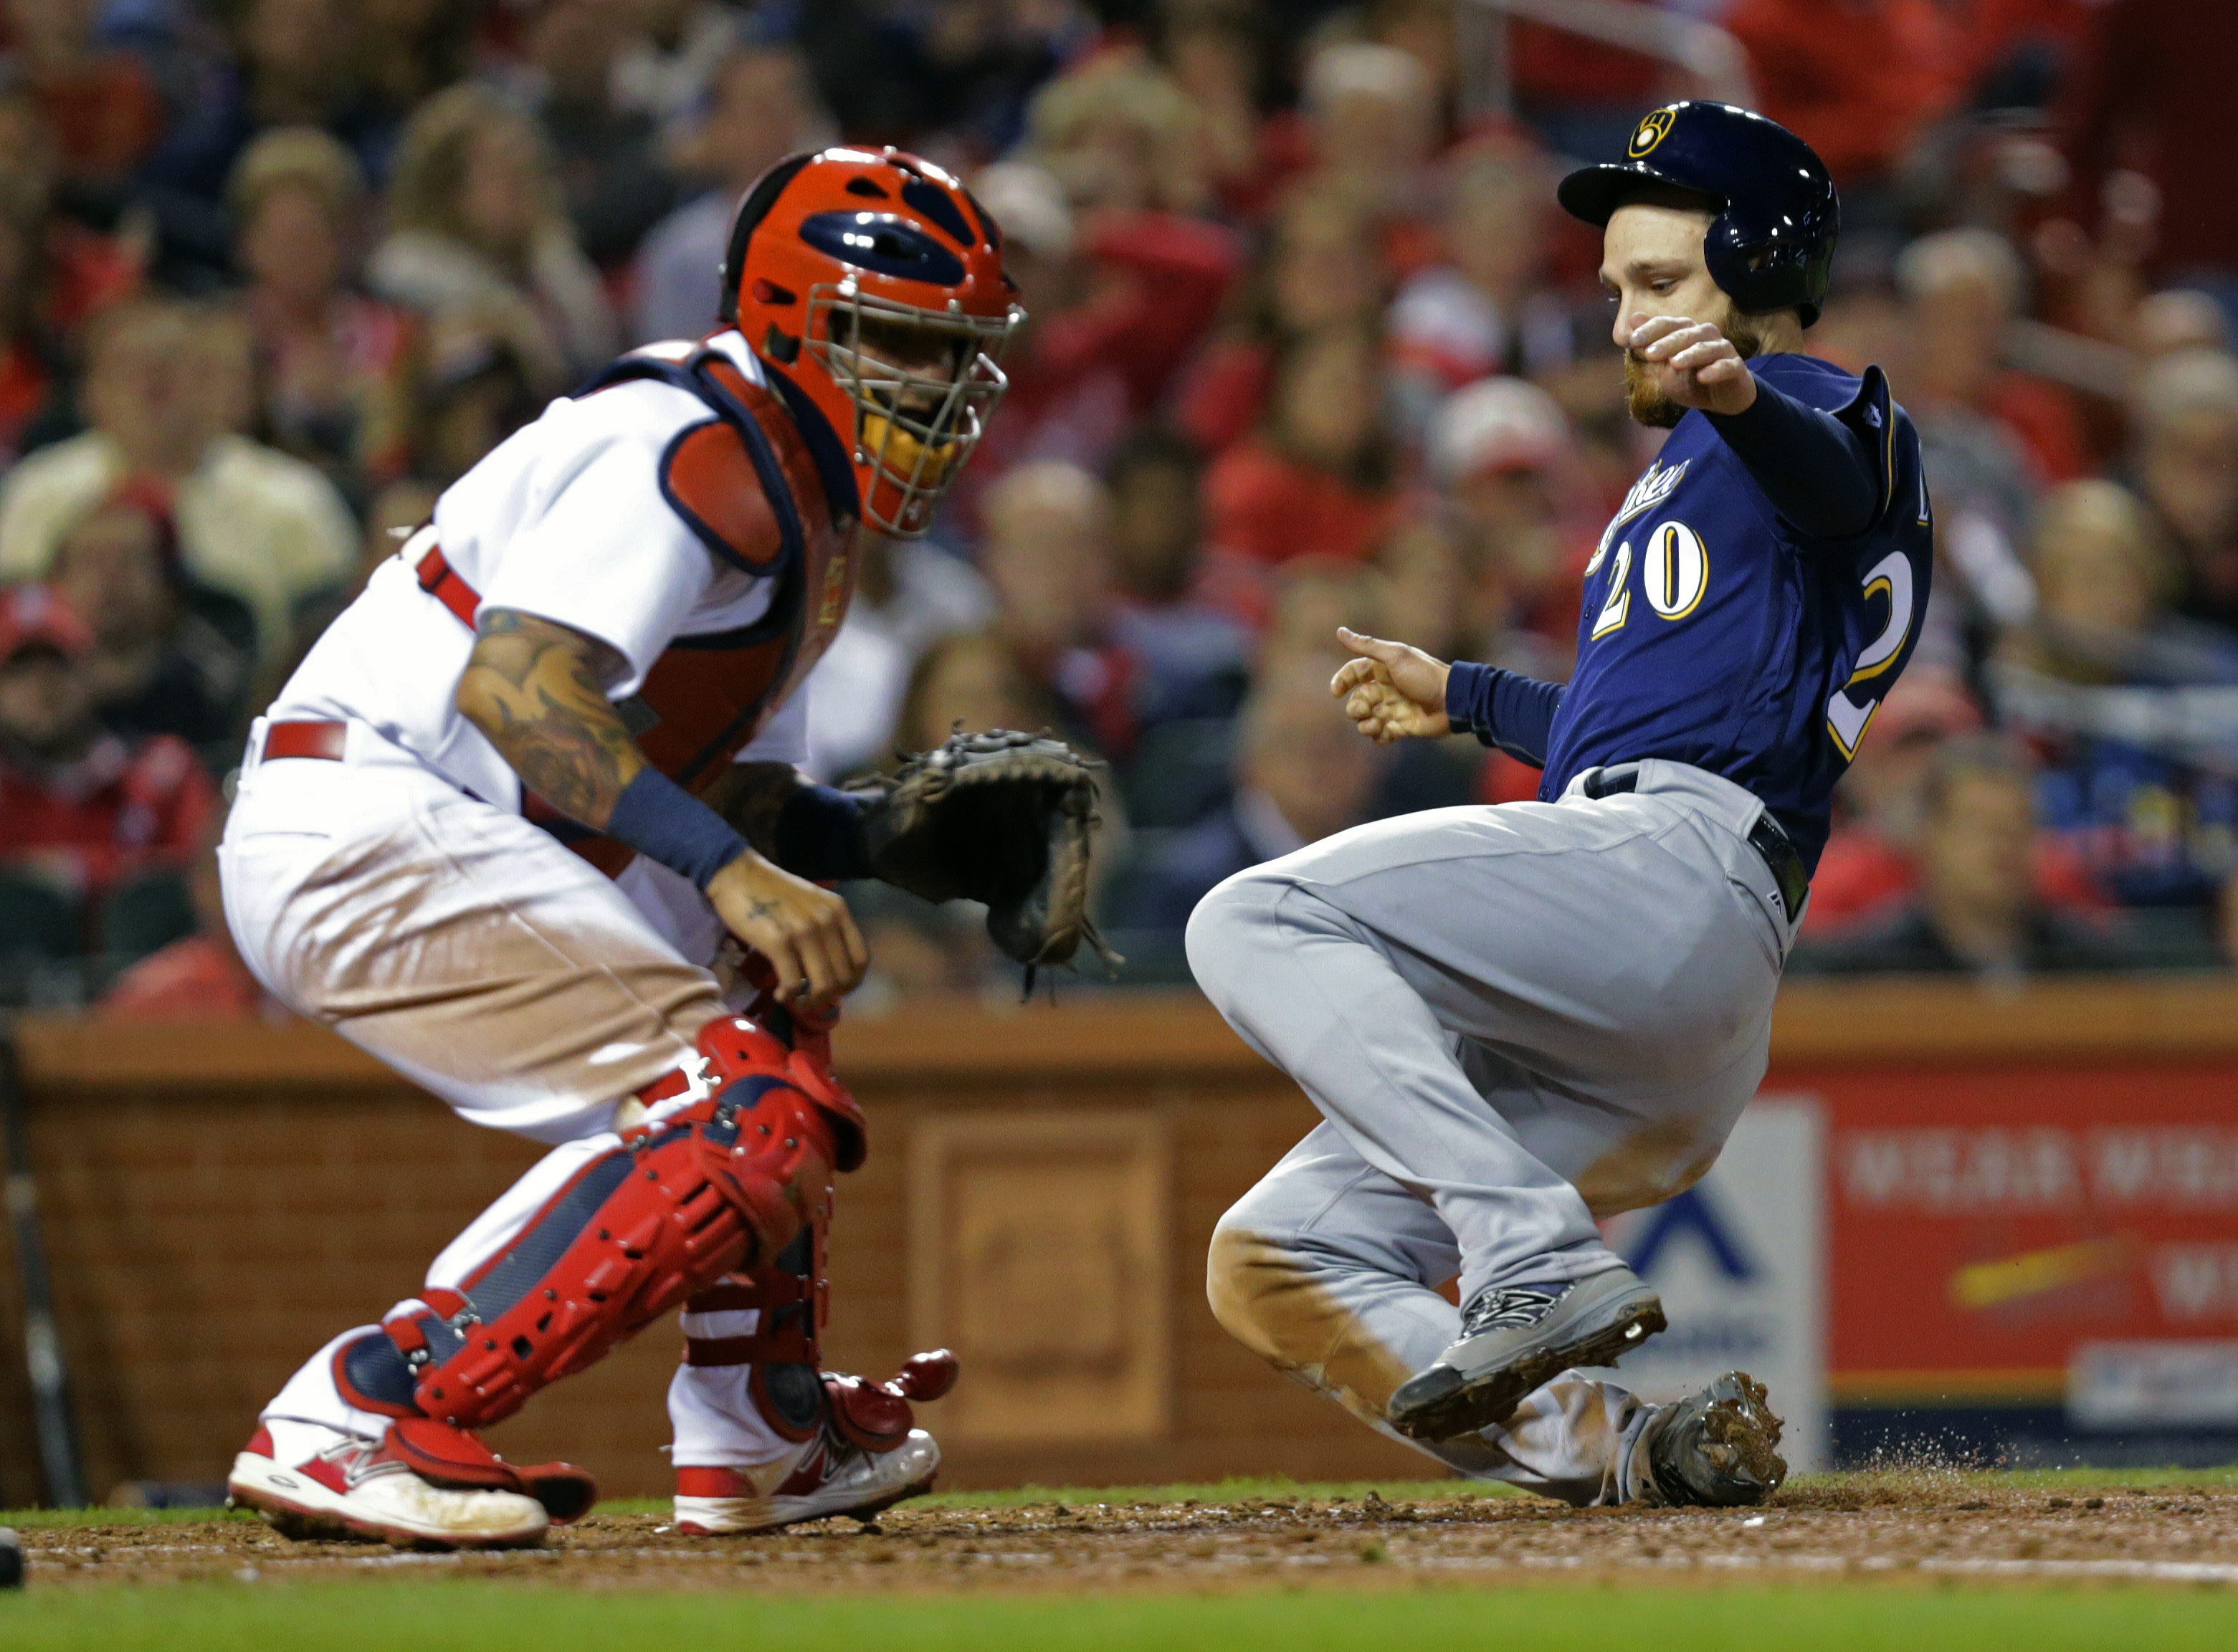 Milwaukee Brewers' Jonathan Lucroy (20) scores from first on a double by Chris Carter as St. Louis Cardinals catcher Yadier Molina (4) waits for a throw in the fifth inning of a baseball game, Wednesday, April 13, 2016 in St. Louis. (AP Photo/Tom Gannam)